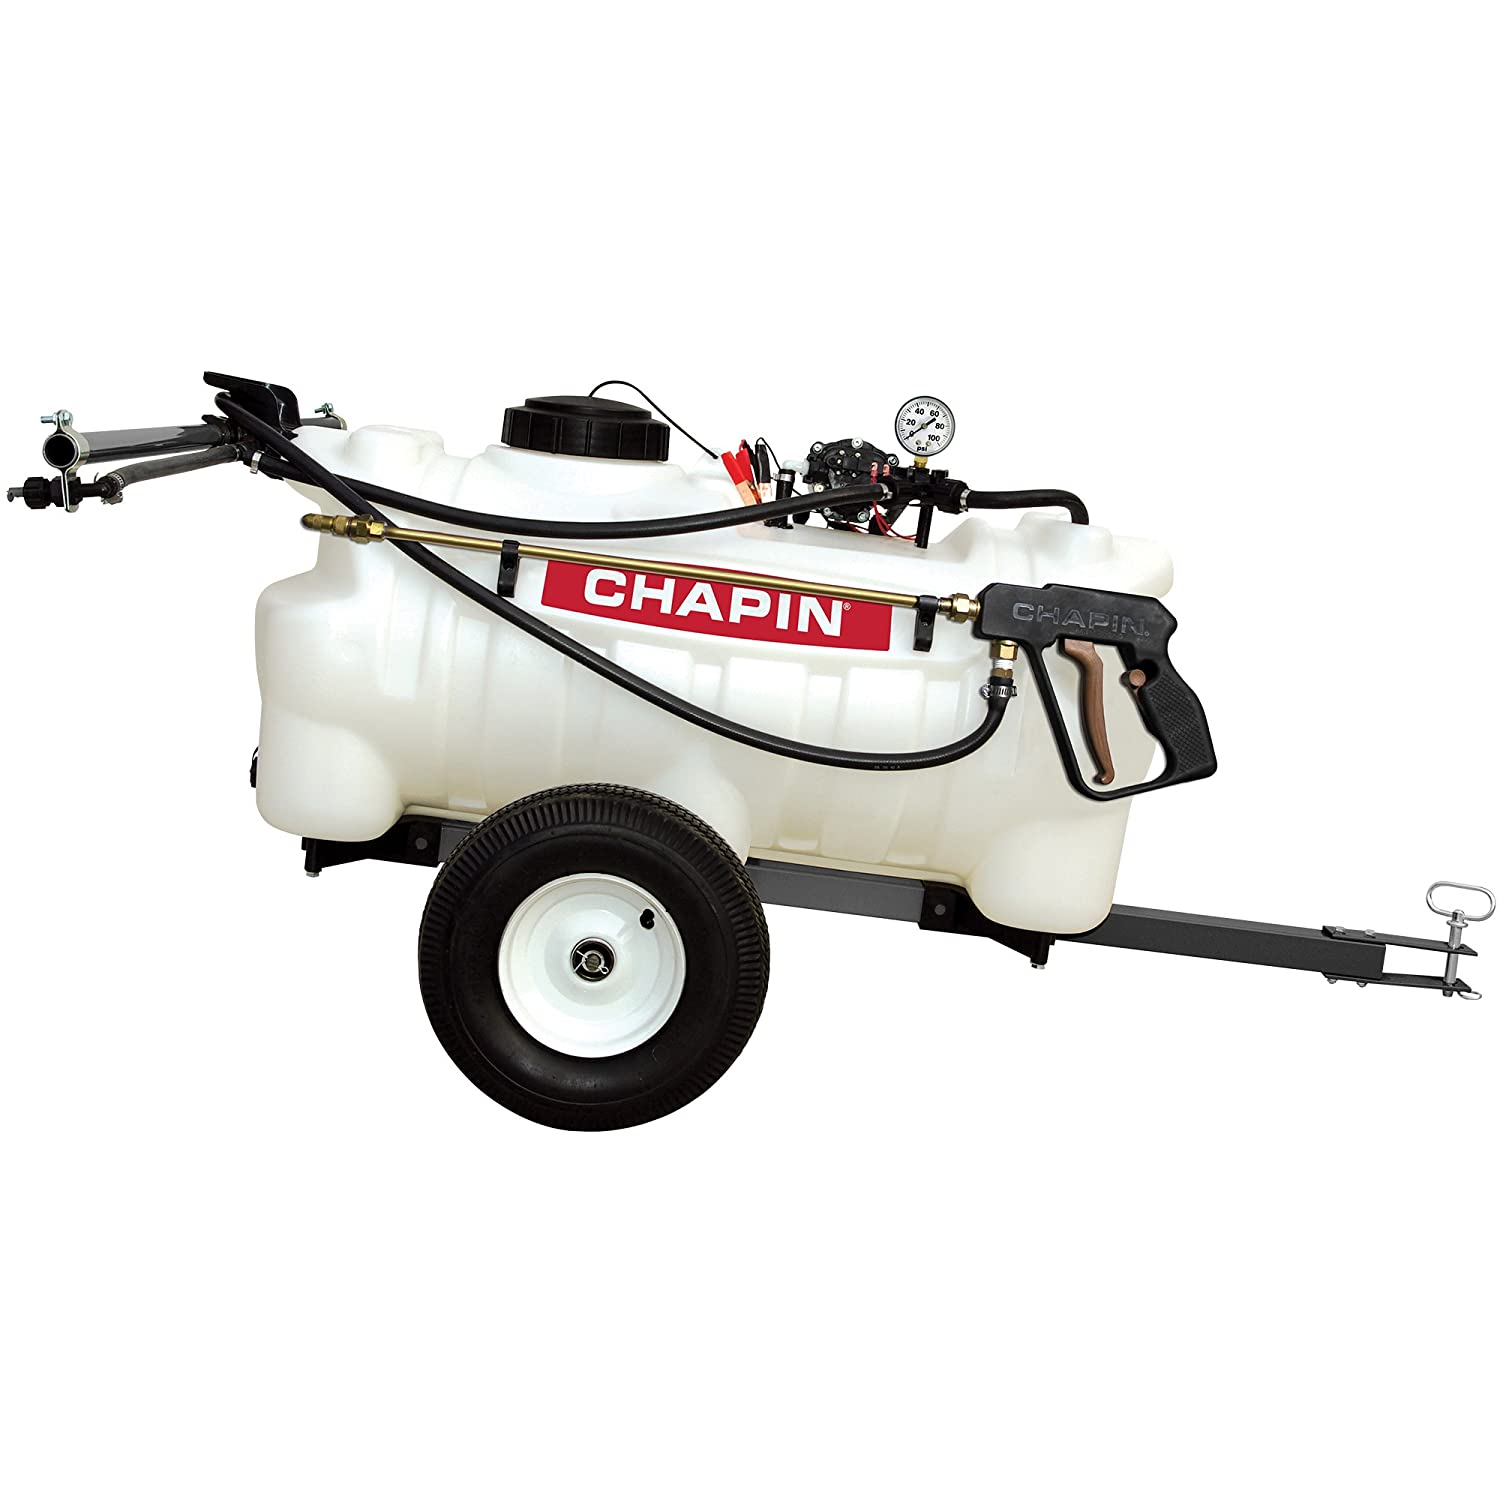 Chapin International 97700N EZ Dripless Tow Behind Sprayer, 25 gallons Translucent White